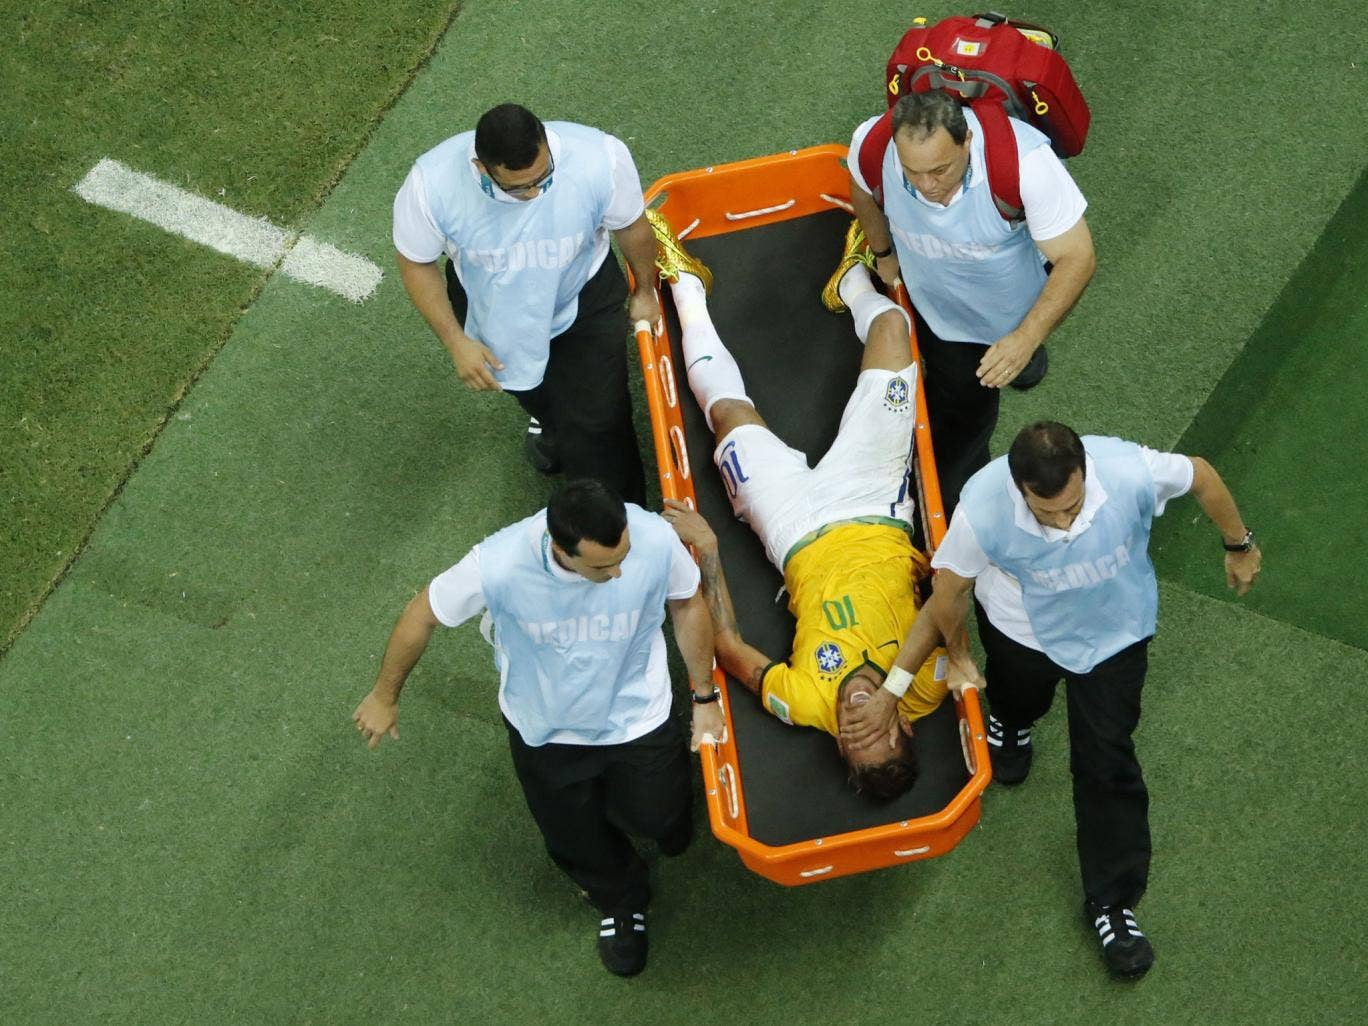 Brazil's forward Neymar is carried on a stretcher after being injured during the quarter-final football match between Brazil and Colombia